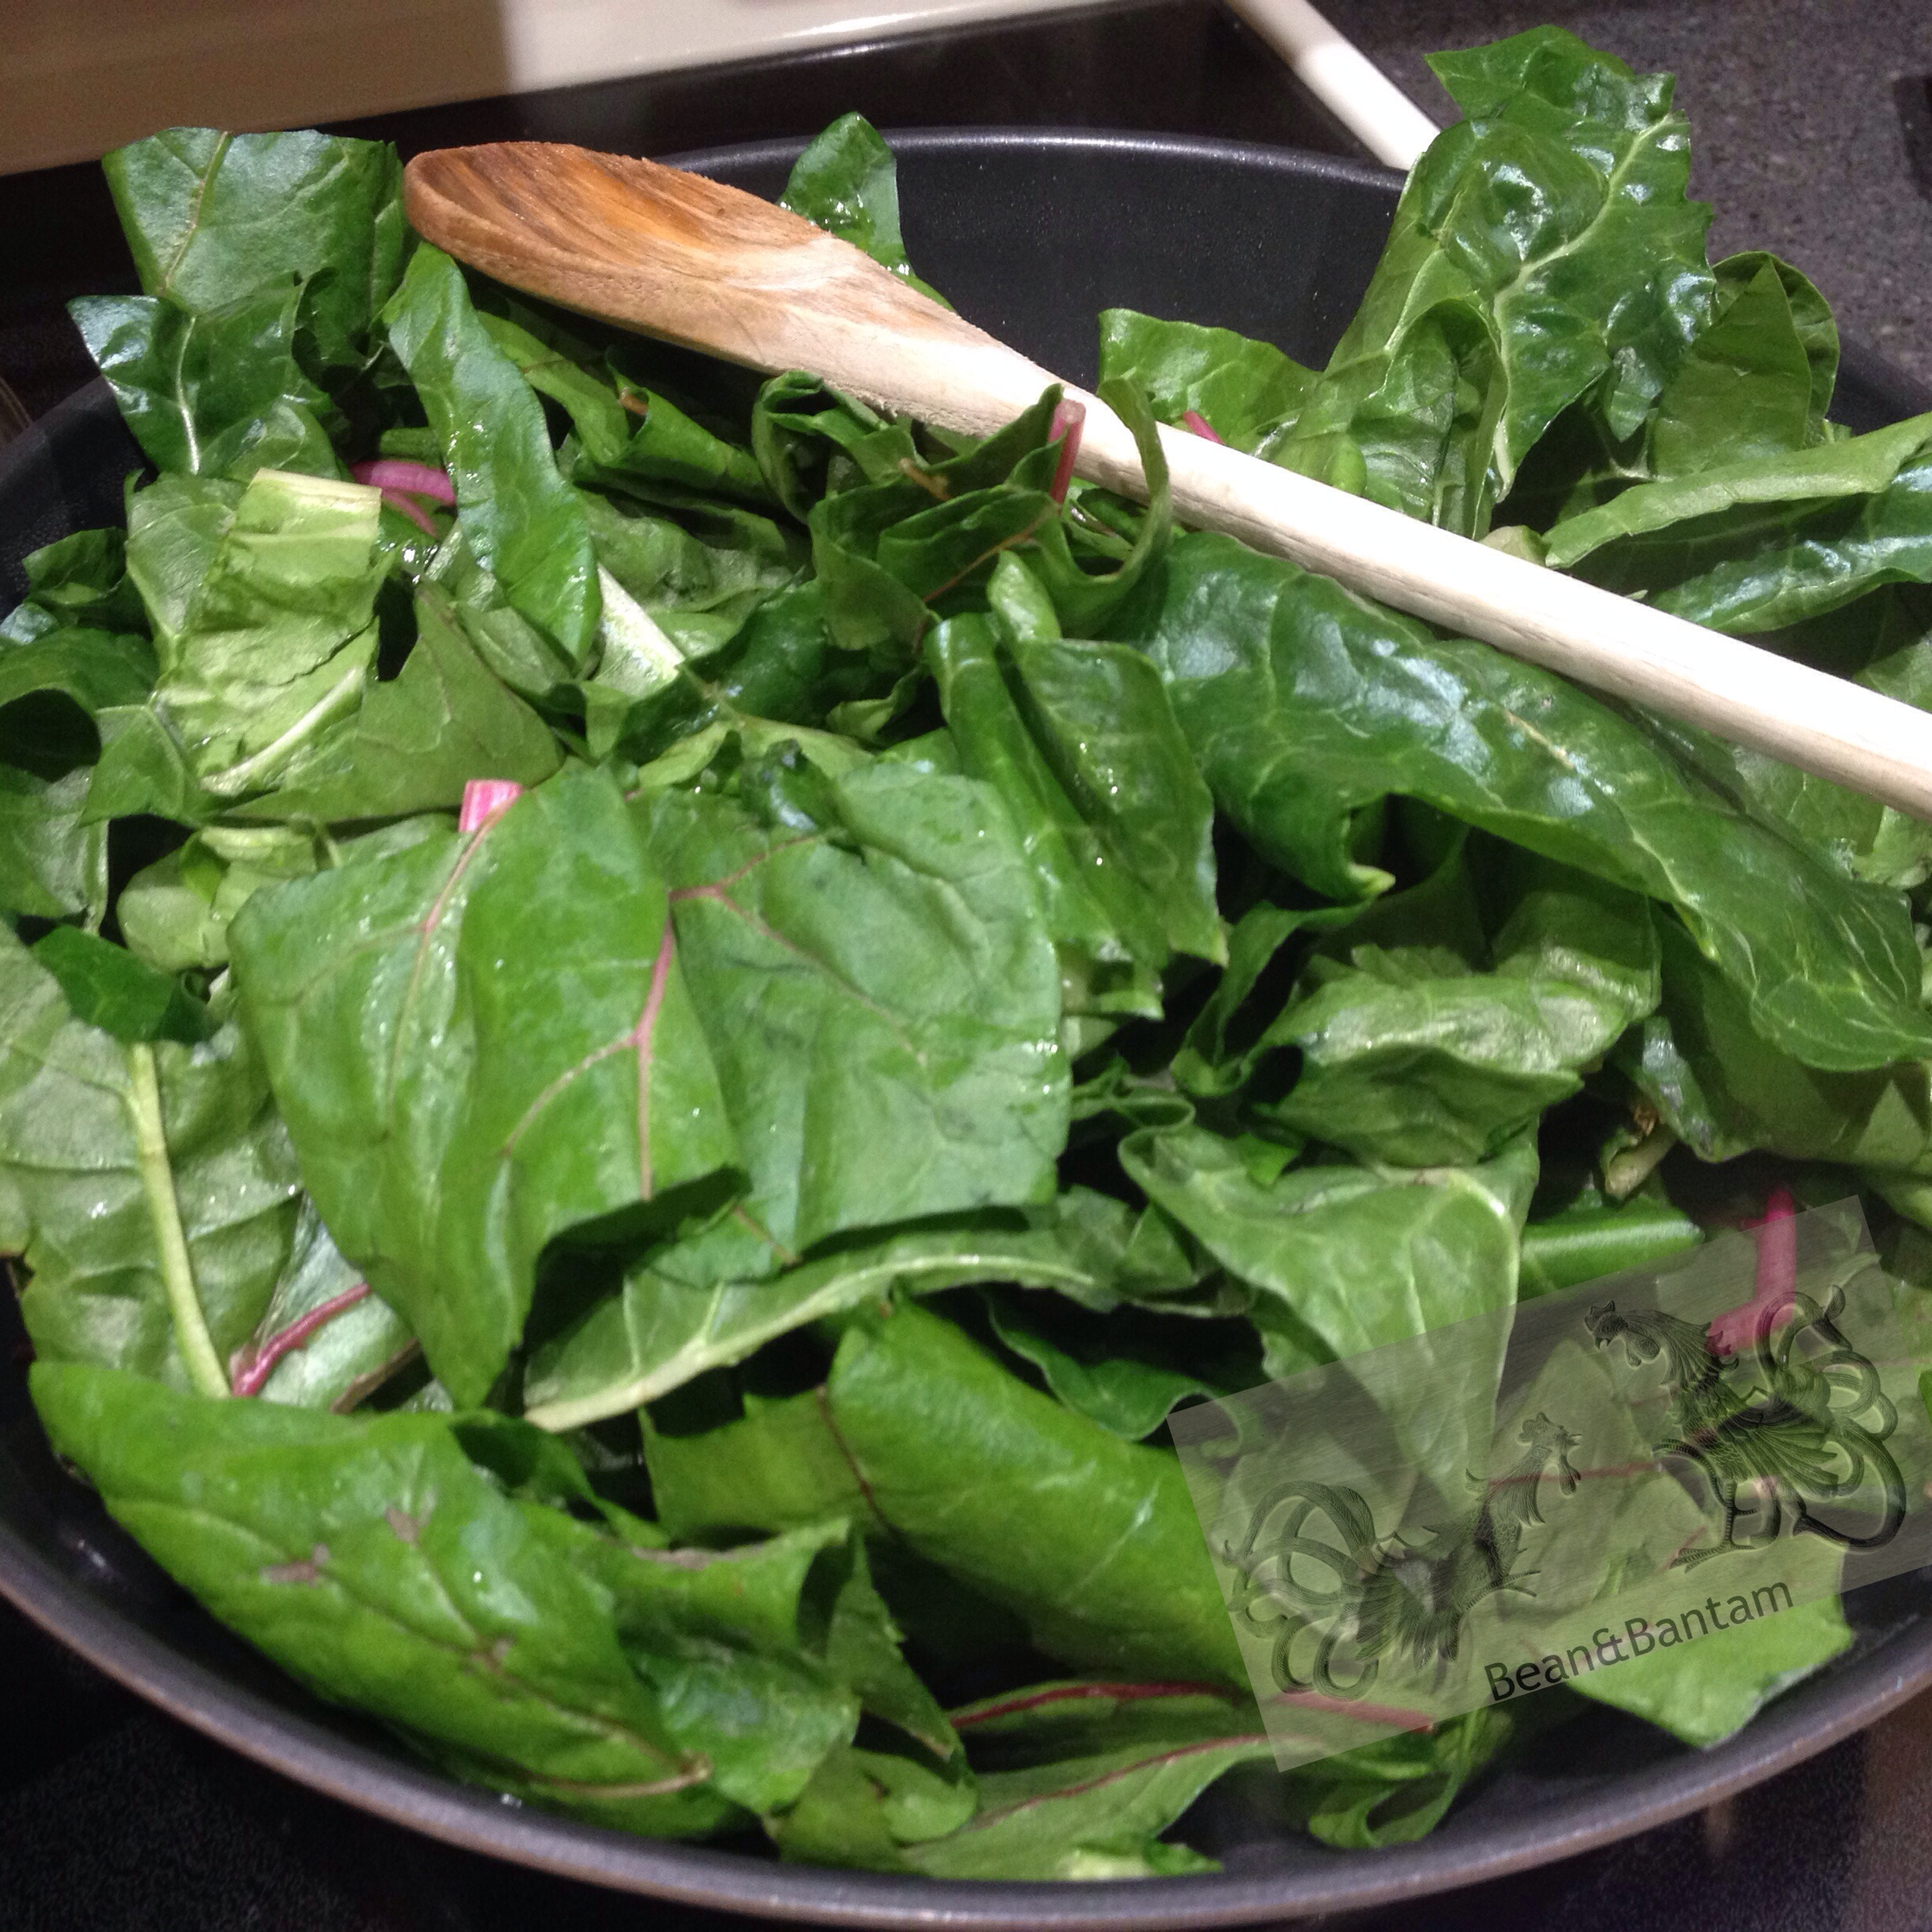 chard greens are initially quite bulky, but will cook down